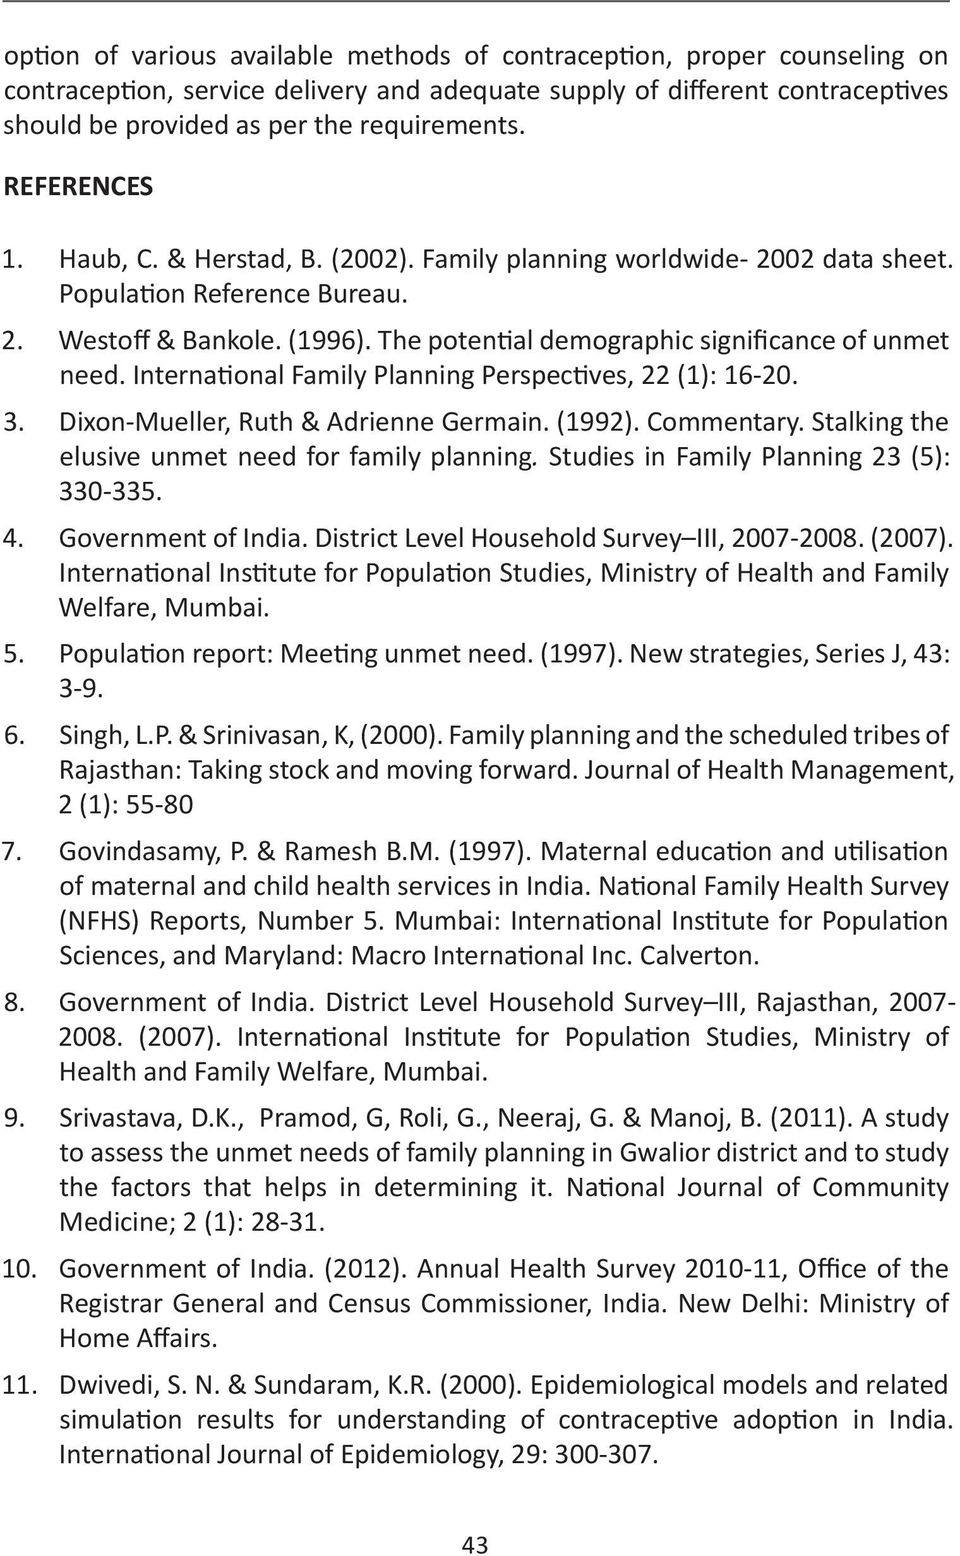 The potential demographic significance of unmet need. International Family Planning Perspectives, 22 (1): 16-20. 3. Dixon-Mueller, Ruth & Adrienne Germain. (1992). Commentary.